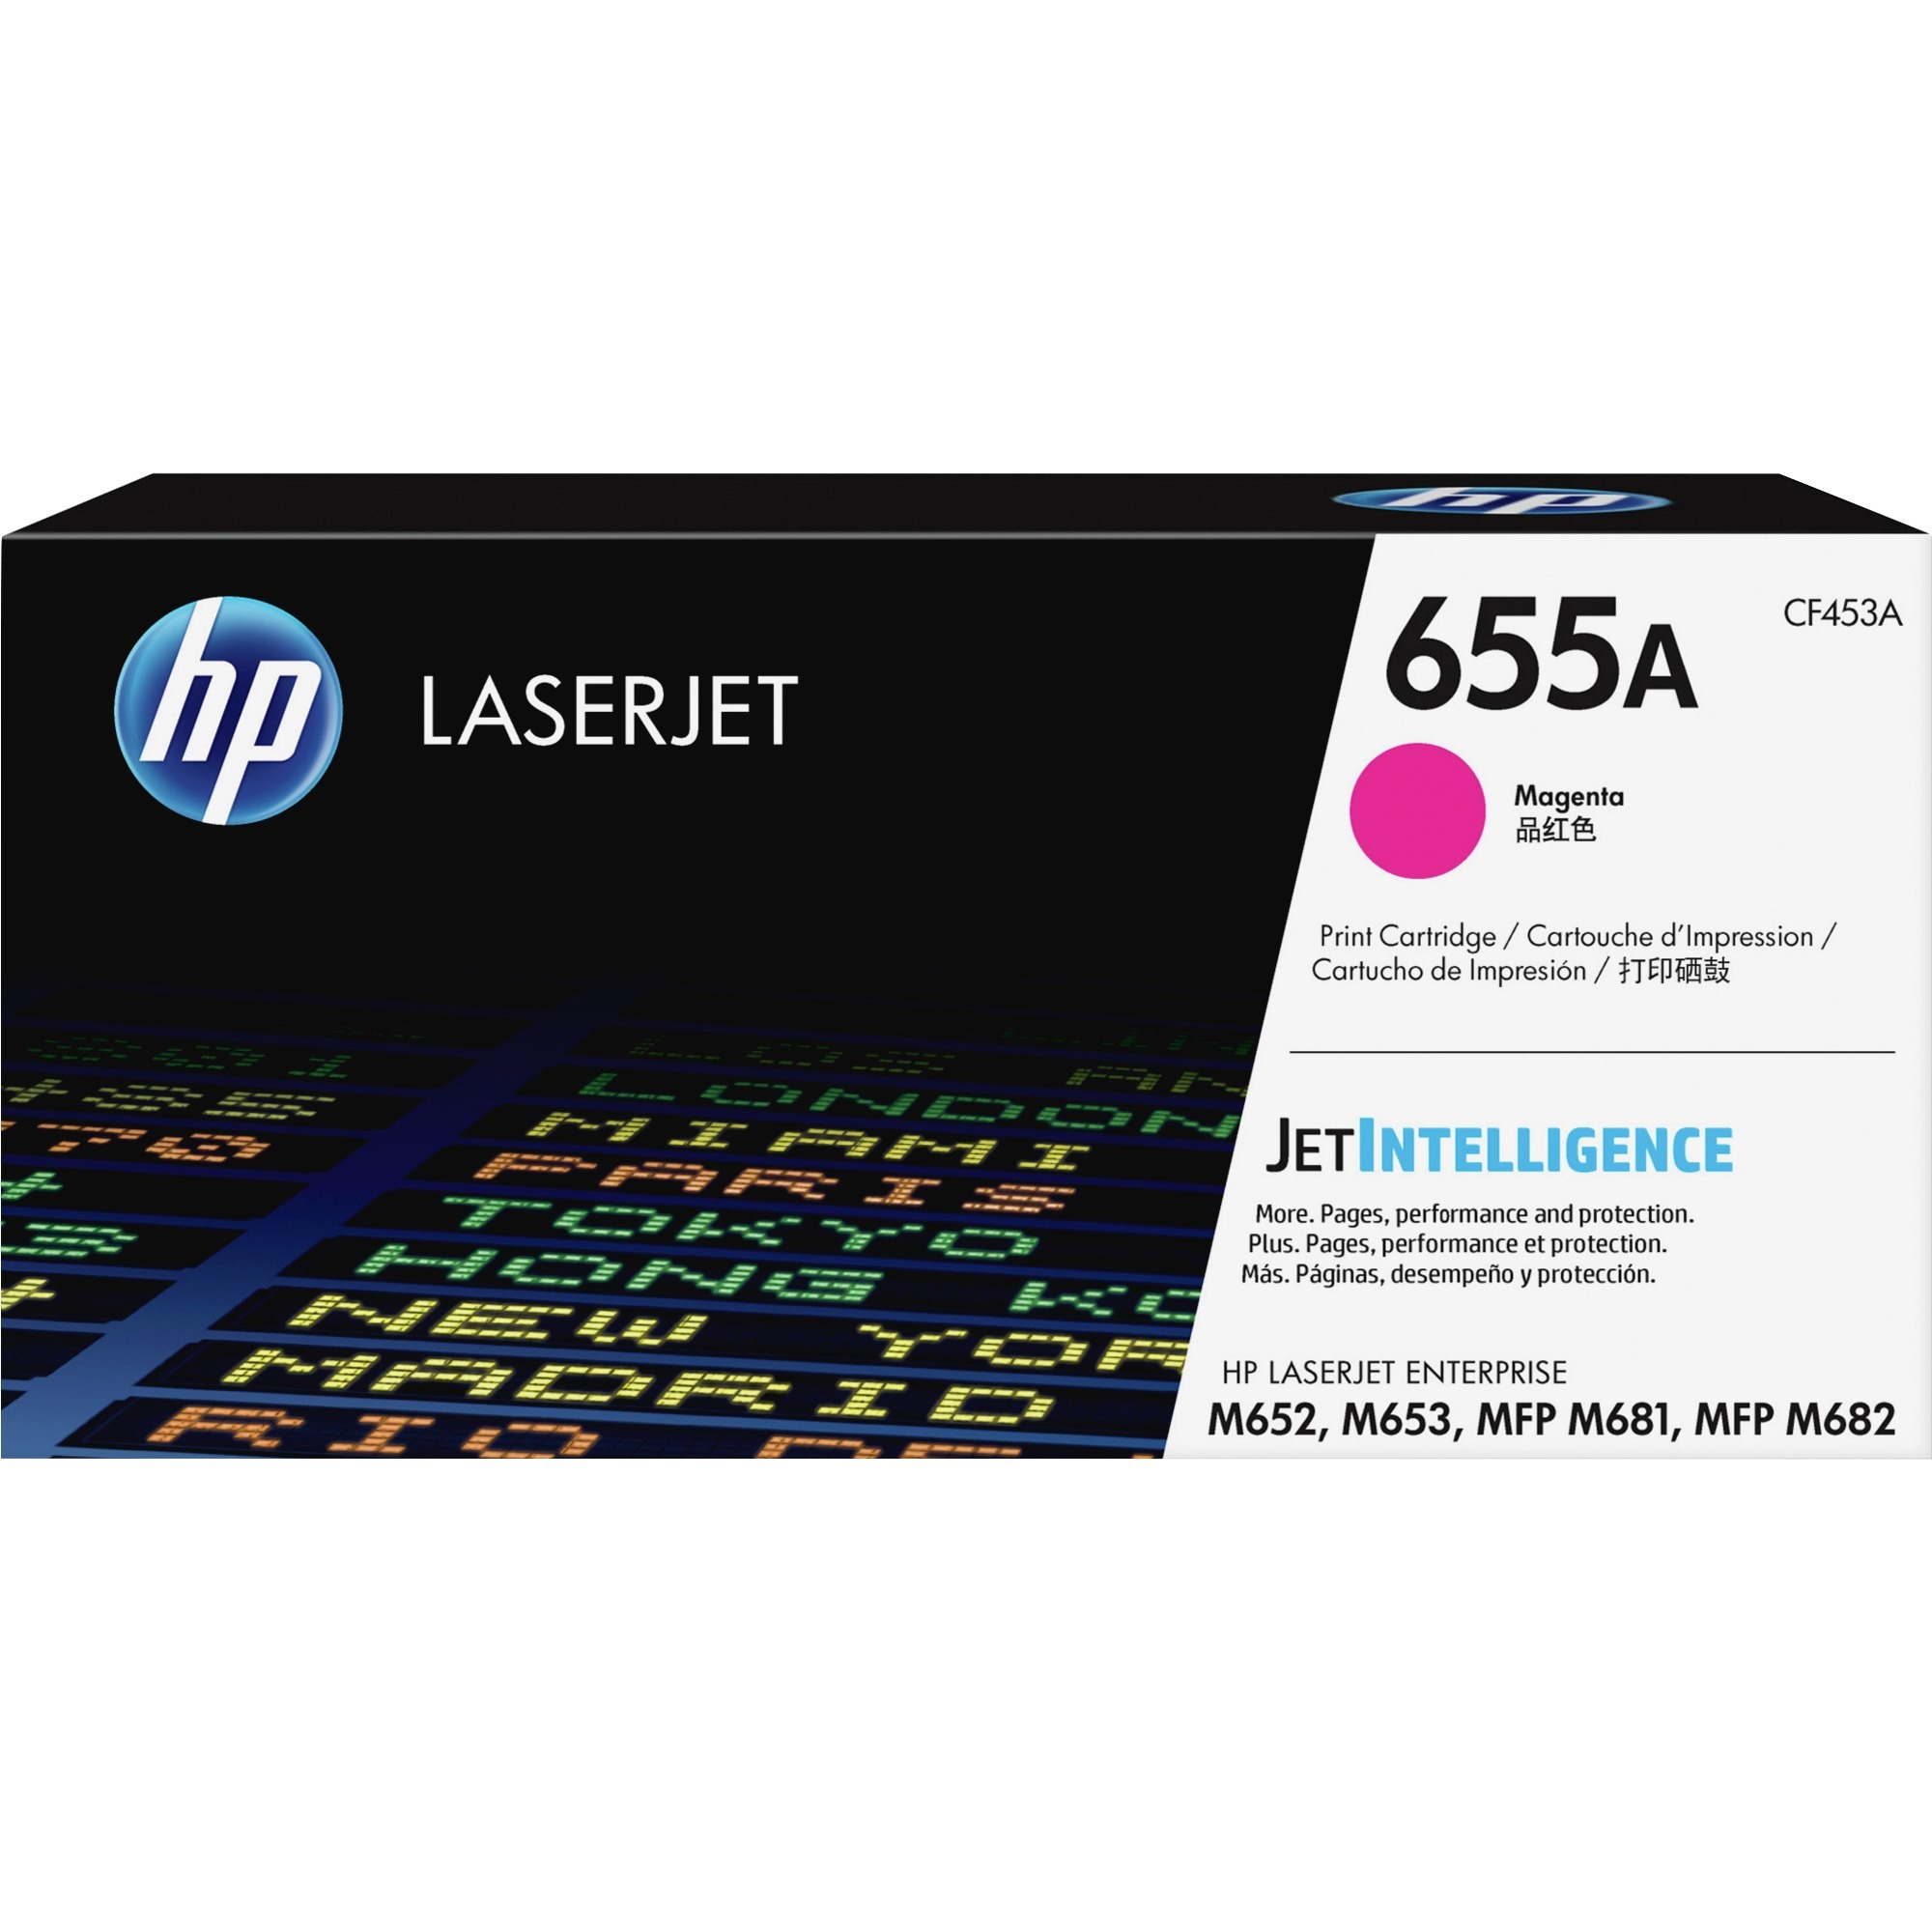 HP 655A (CF453A) Magenta Original LJ Toner Cartridge